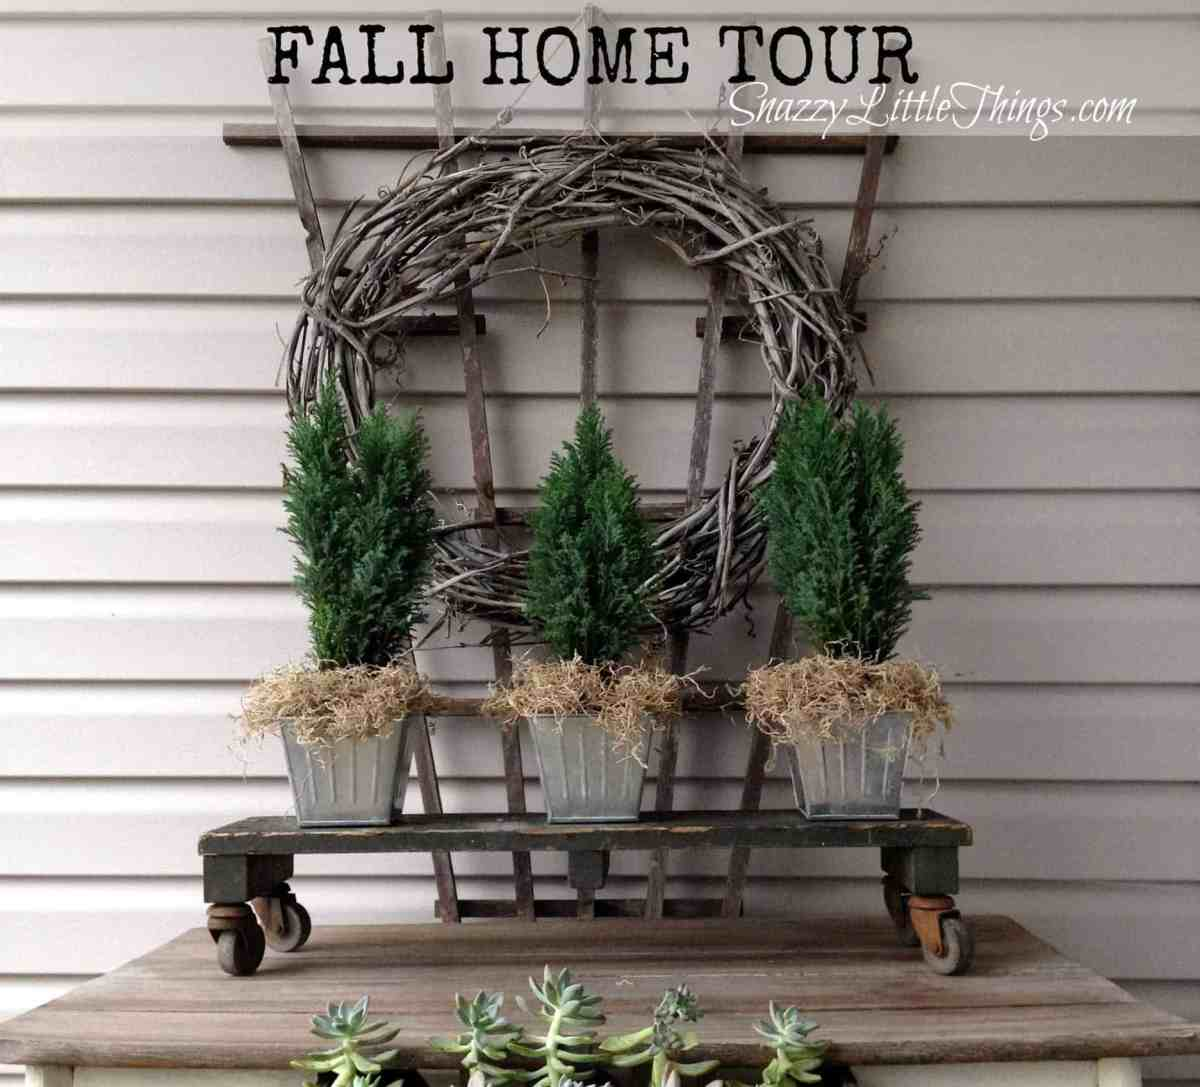 Ready for Fall: Outdoors